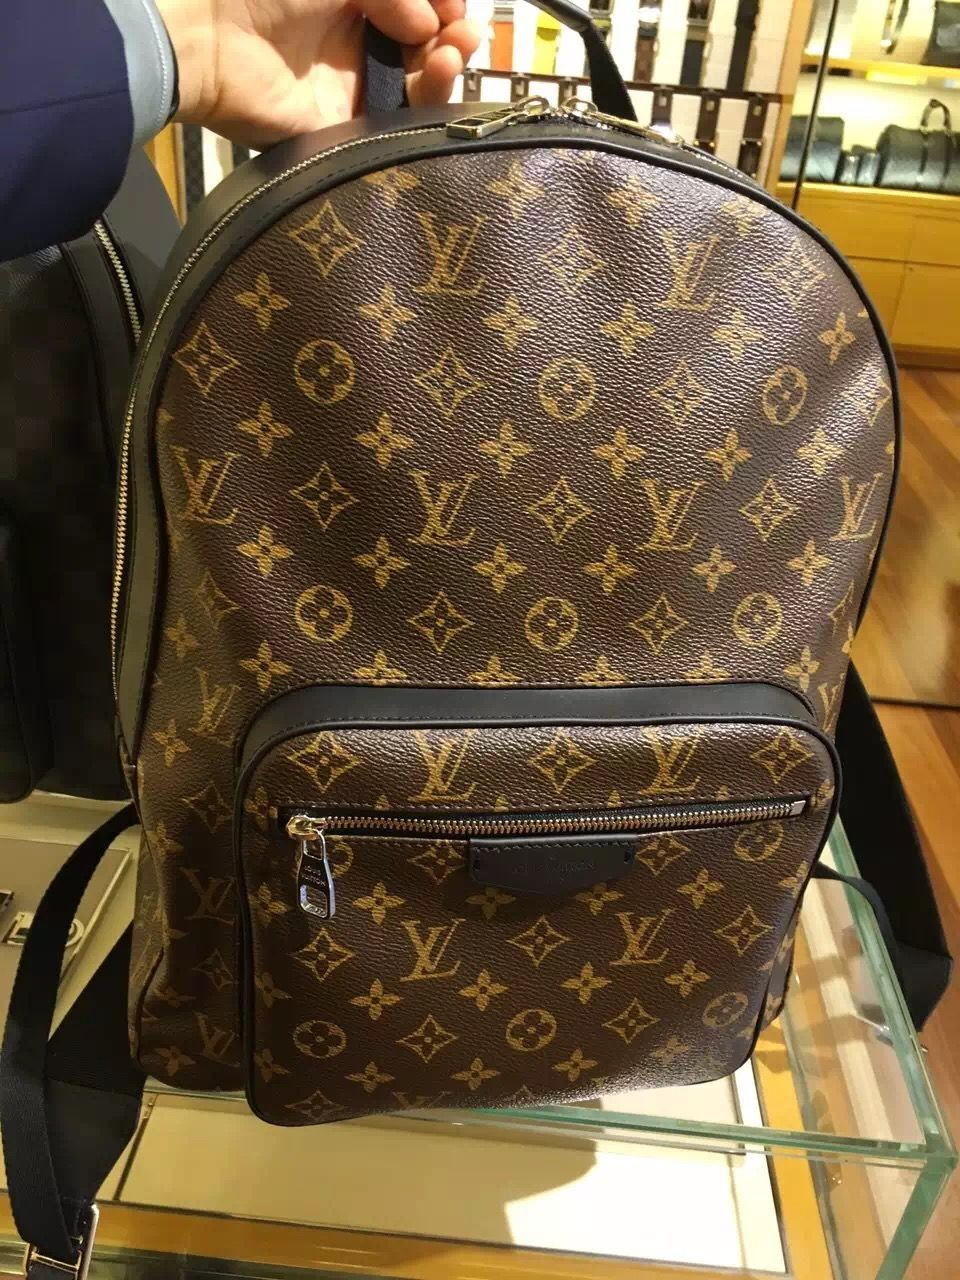 fce1e0a71ec1 Men s Macassar Josh Backpack M41530 Luis Vuitton Backpack